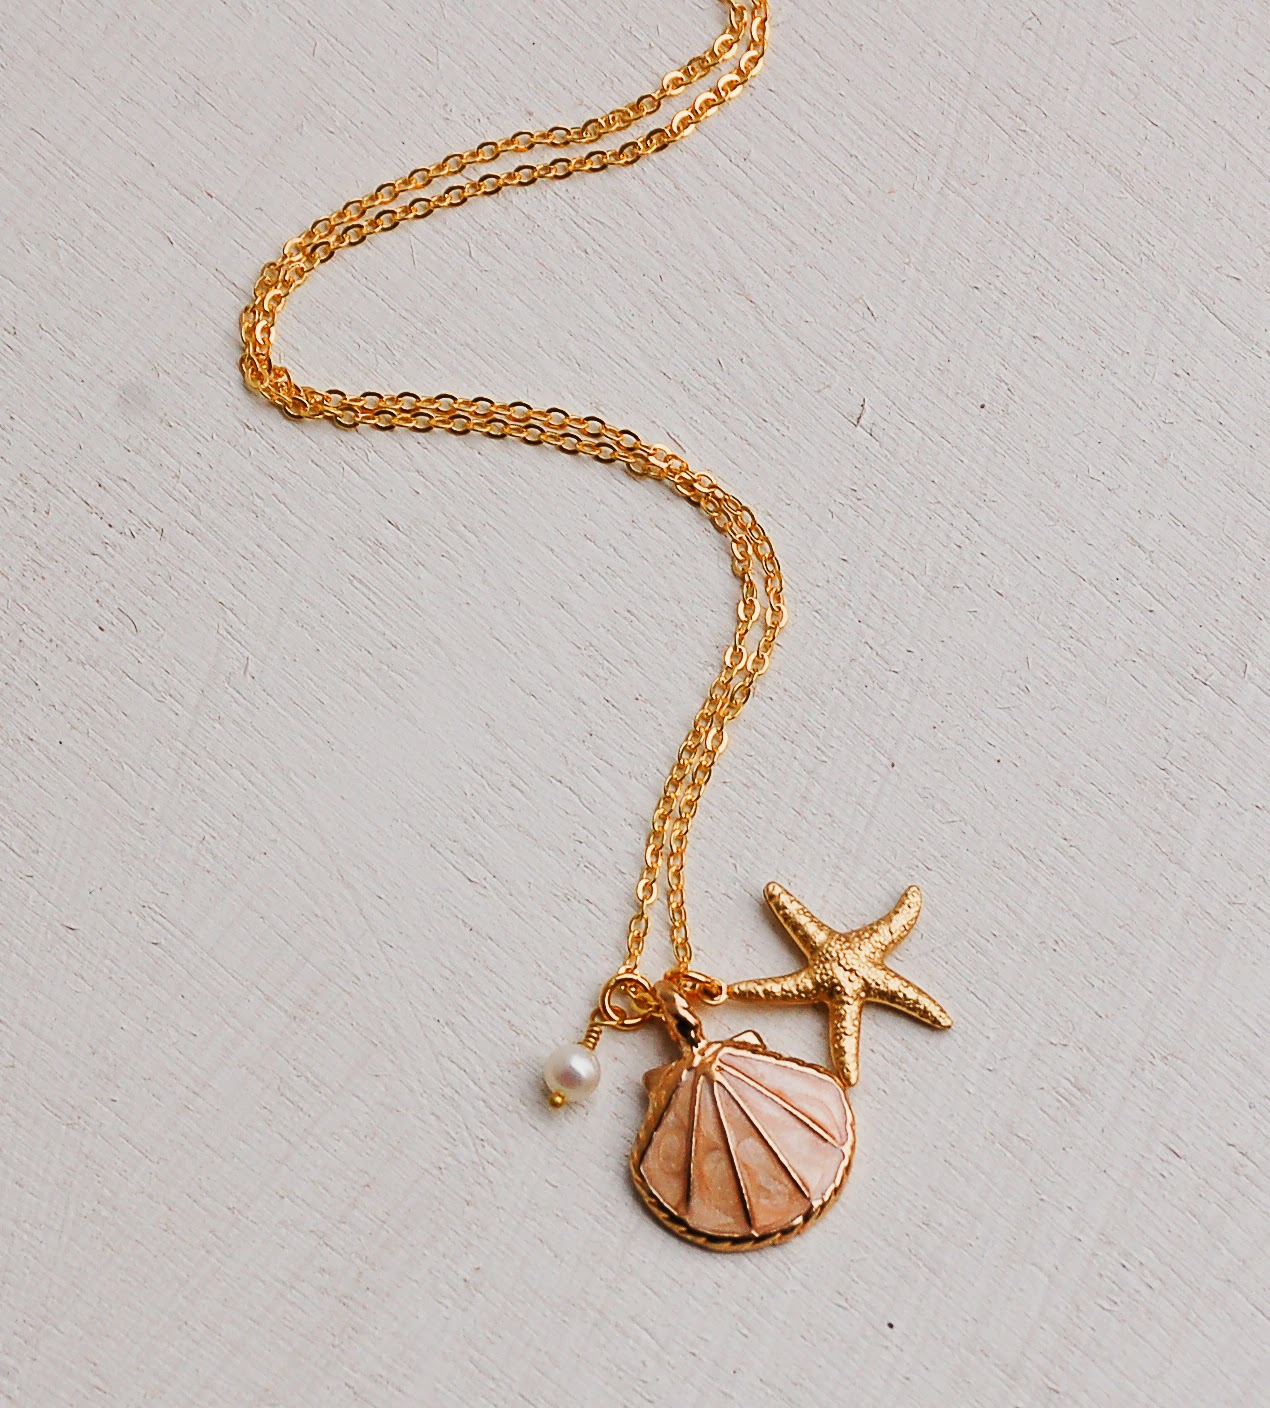 https://www.etsy.com/listing/223991572/sea-shell-necklace-gold-shell-necklace?ref=shop_home_active_1&ga_search_query=shell